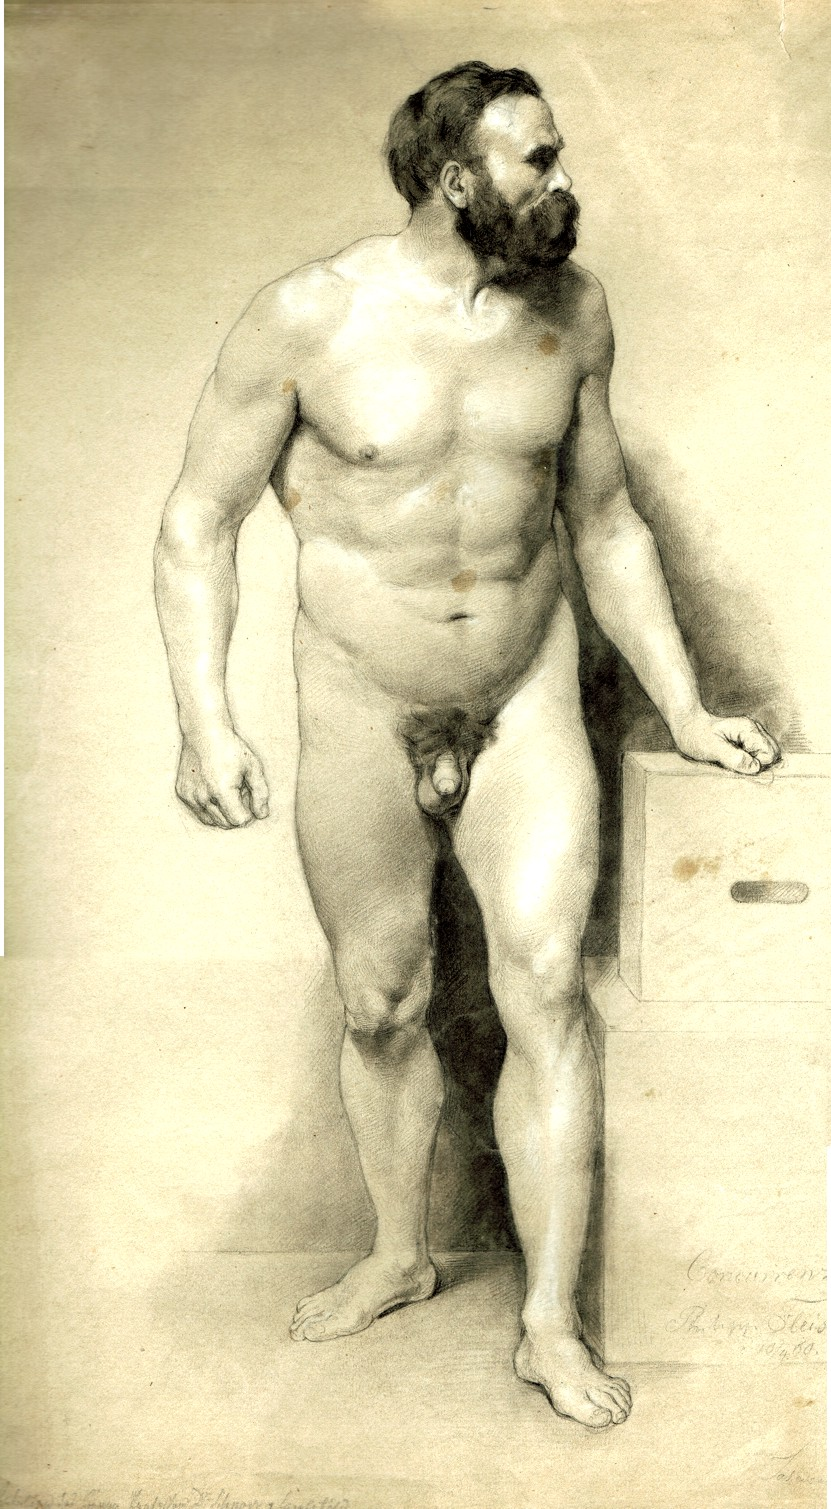 Giclette !!!  19th century nude men love